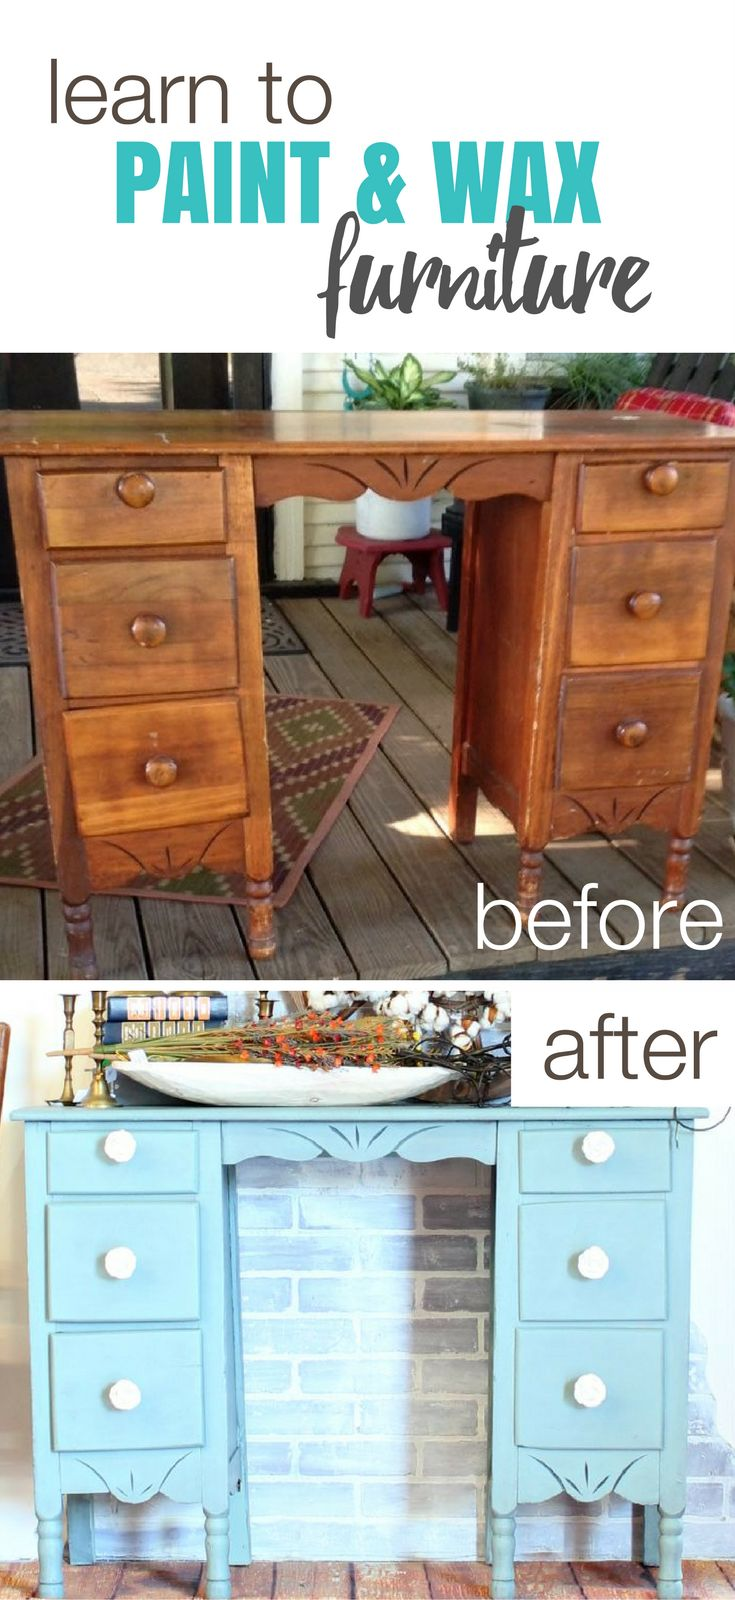 571 Best Furniture Painting Tips Images On Pinterest Furniture Makeover Furniture Redo And